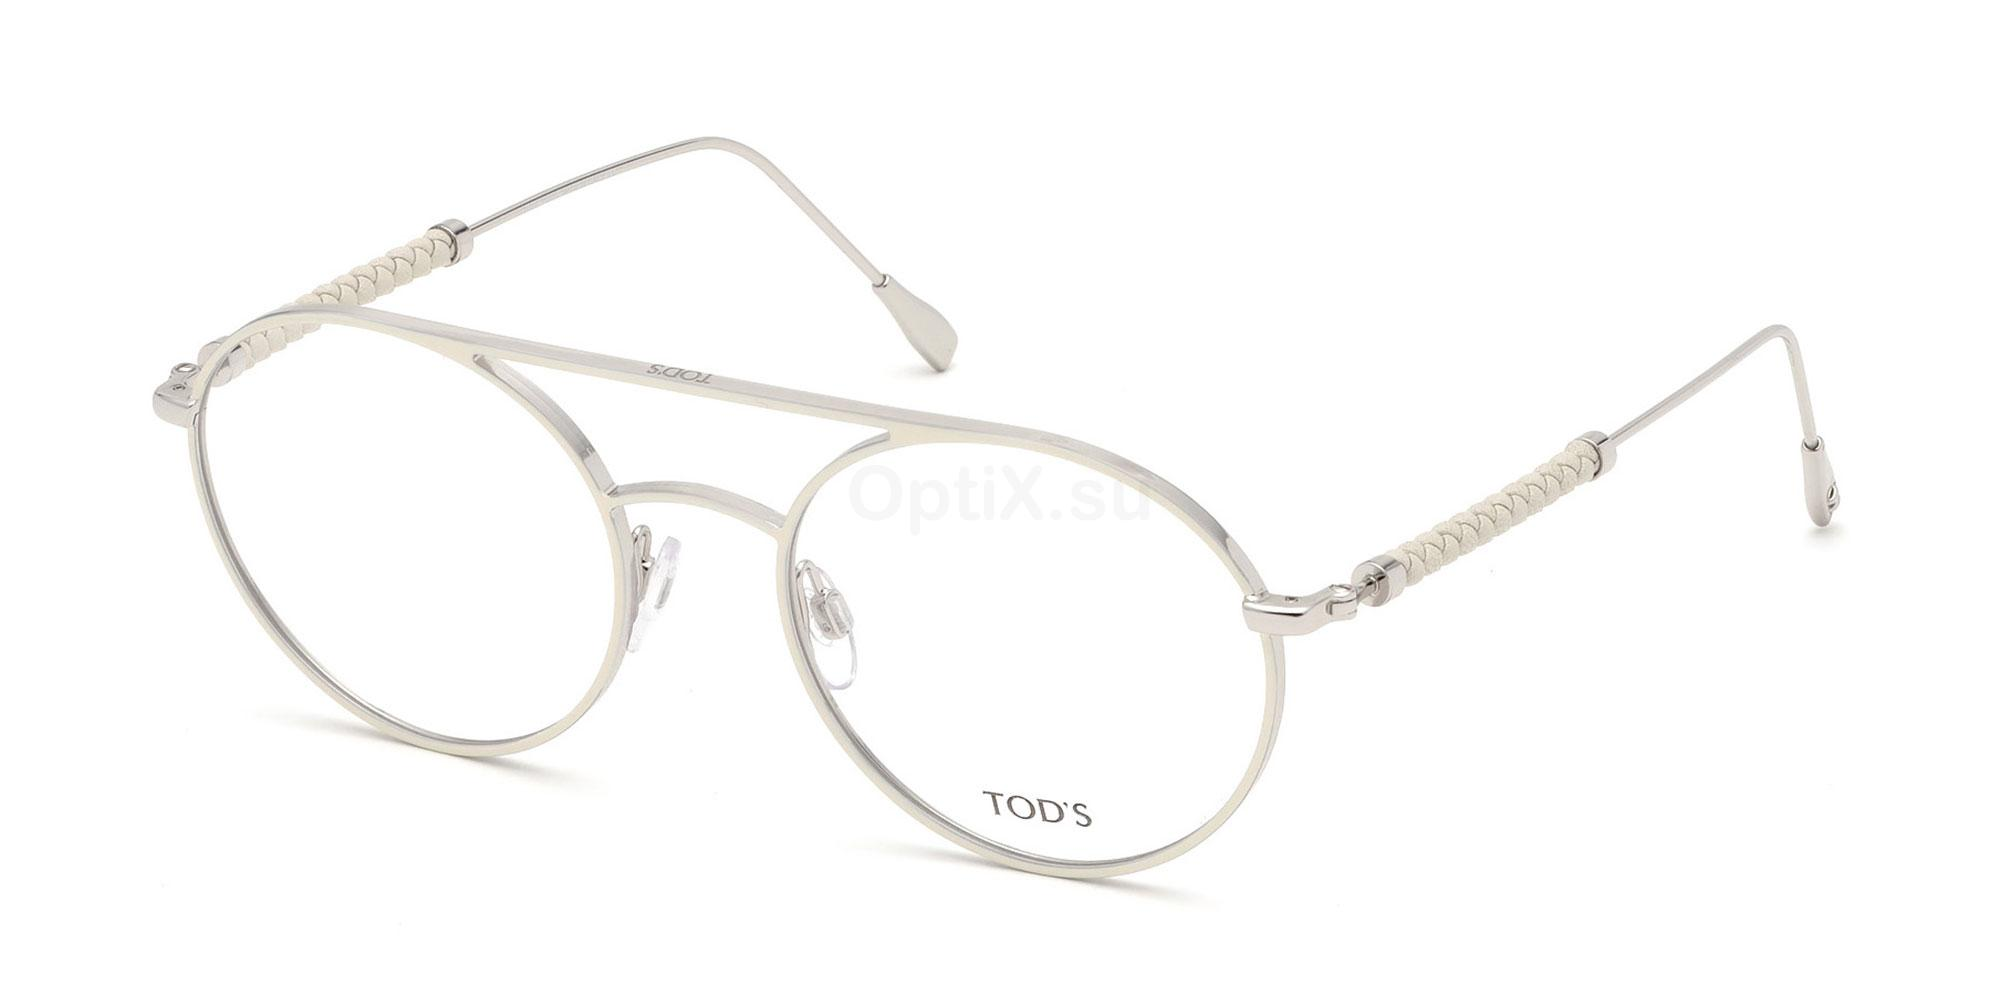 018 TO5200 Glasses, TODS